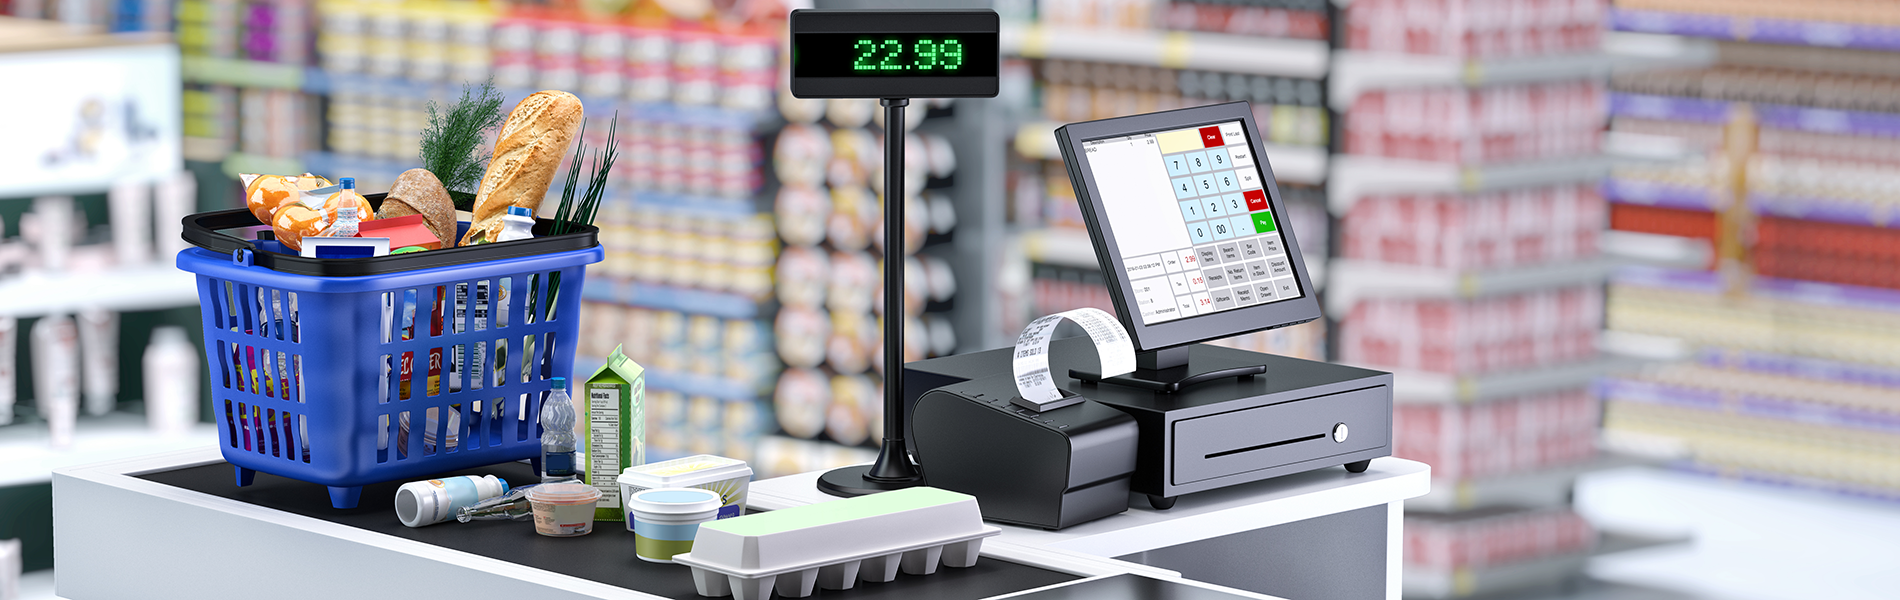 Professional Liquor Store Pos System Pos Software Web Site